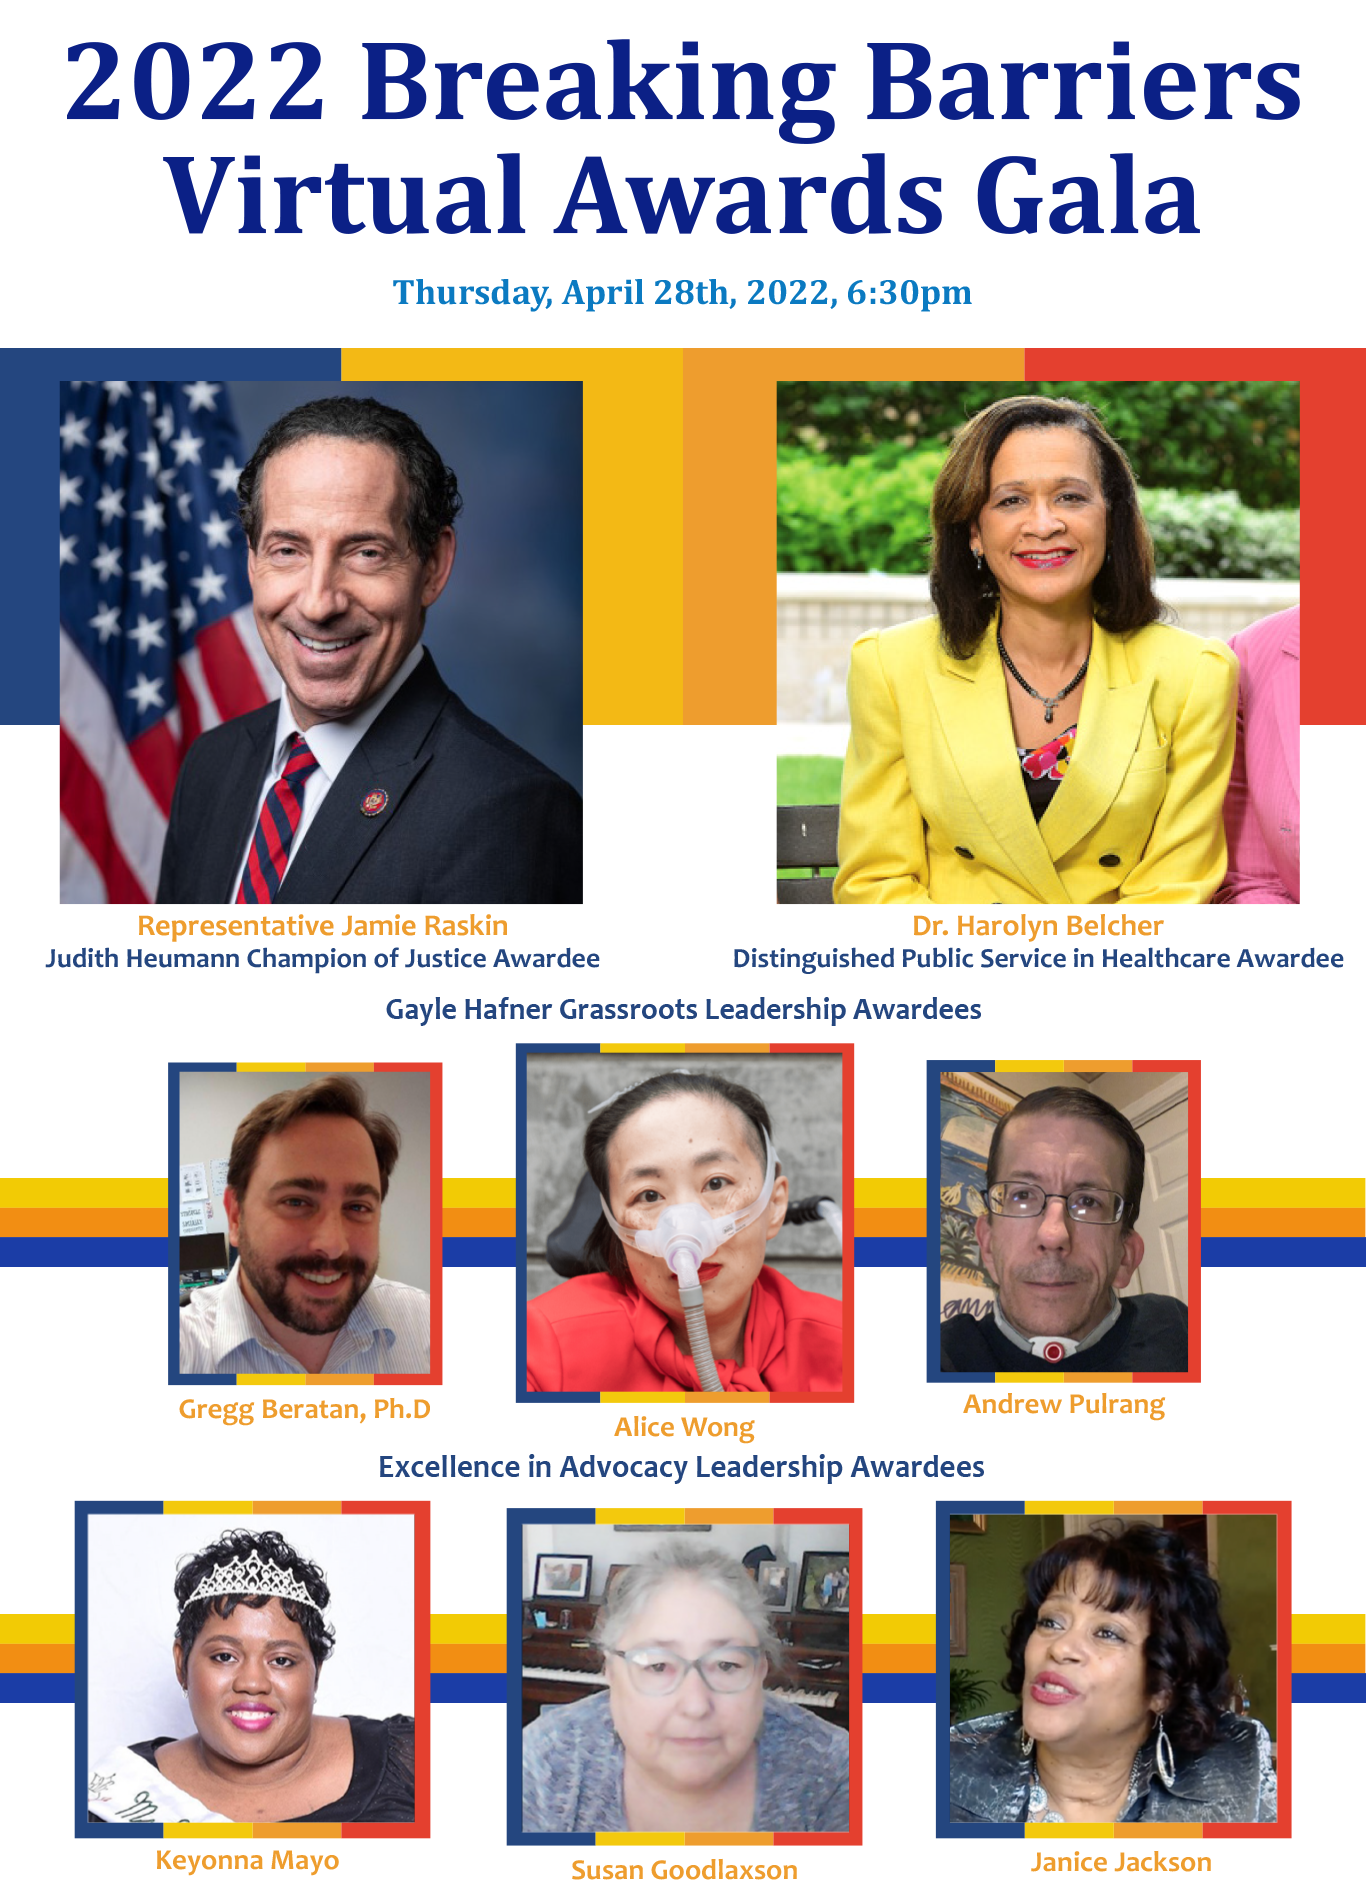 2022 Breaking Barriers Virtual Awards Gala. Thursday, April 28th, 2022, 6:30M. Images: From top left to bottom right: U.S. Rep. Jamie Raskin (Judith Heumann Champion of Justice awardee), Dr. Harolyn Belcher (Distinguished Service in Healthcare awardee), Alice Wong, Andrew Pulrang, Gregg Beratan, P.H.D (Gayle Hafner Grassroots Leadership Awardees), Keyonna Mayo, Susan Goodlaxson, and Janice Jackson (Excellence in Advocacy Leadership awardees).